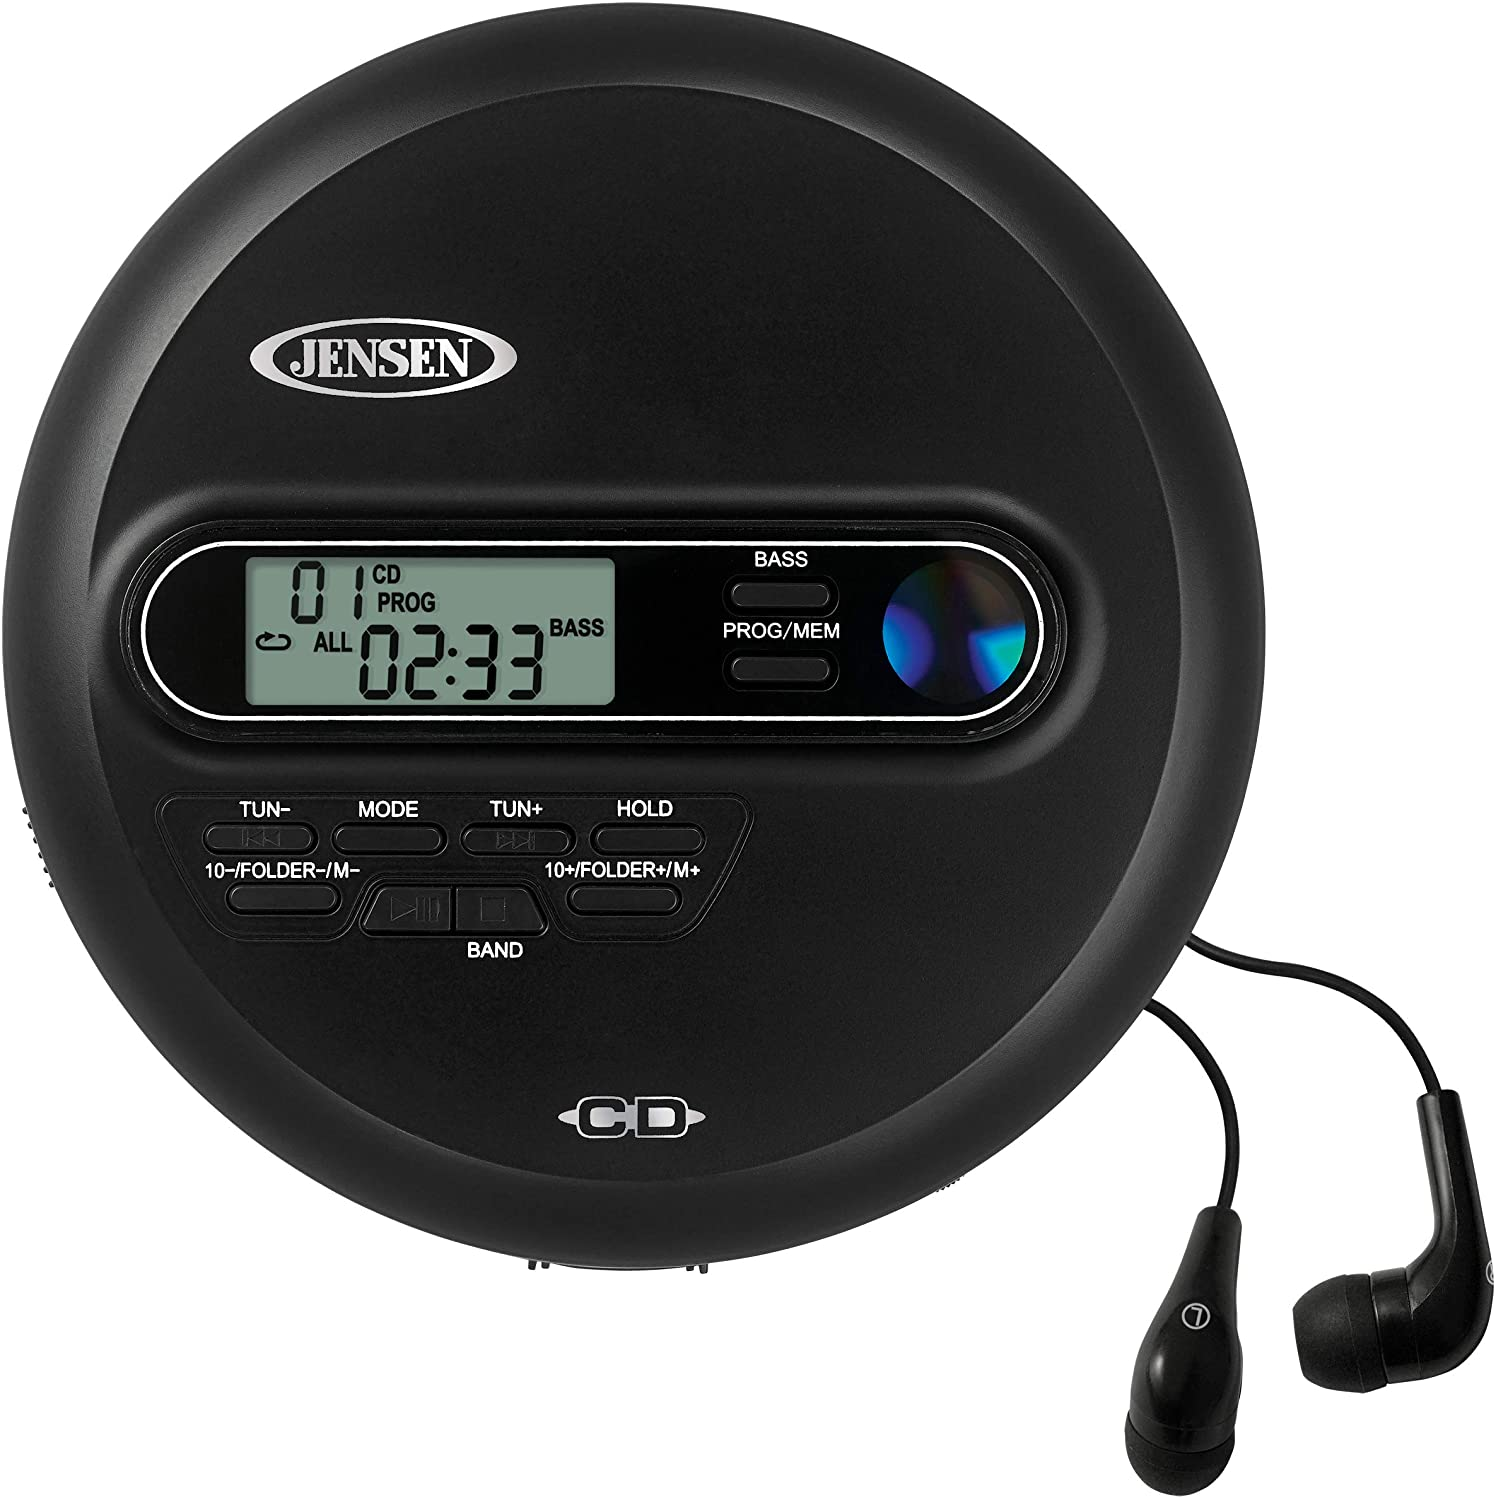 Jensen Portable CD Player Personal CD/MP3 Player + AM/FM Radio + with LCD Display Bass Boost 60-Second Anti Skip CD R/RW/Compatible+ Sport Earbuds Included (Limited Edition Black Series)